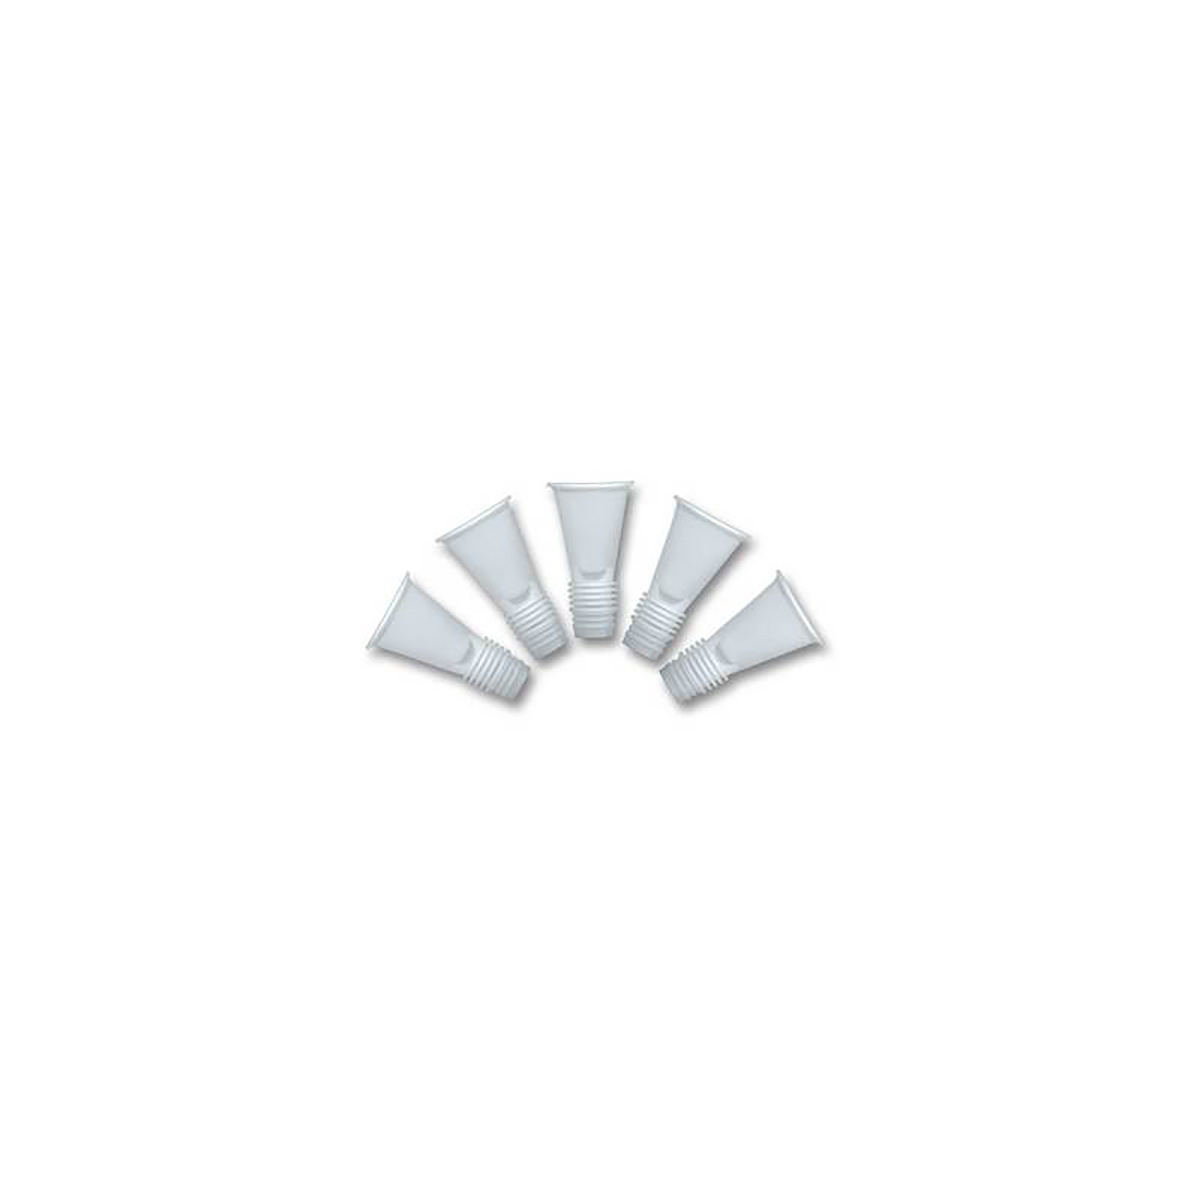 Pack of 35 Straight Mouthpiece Entonox®